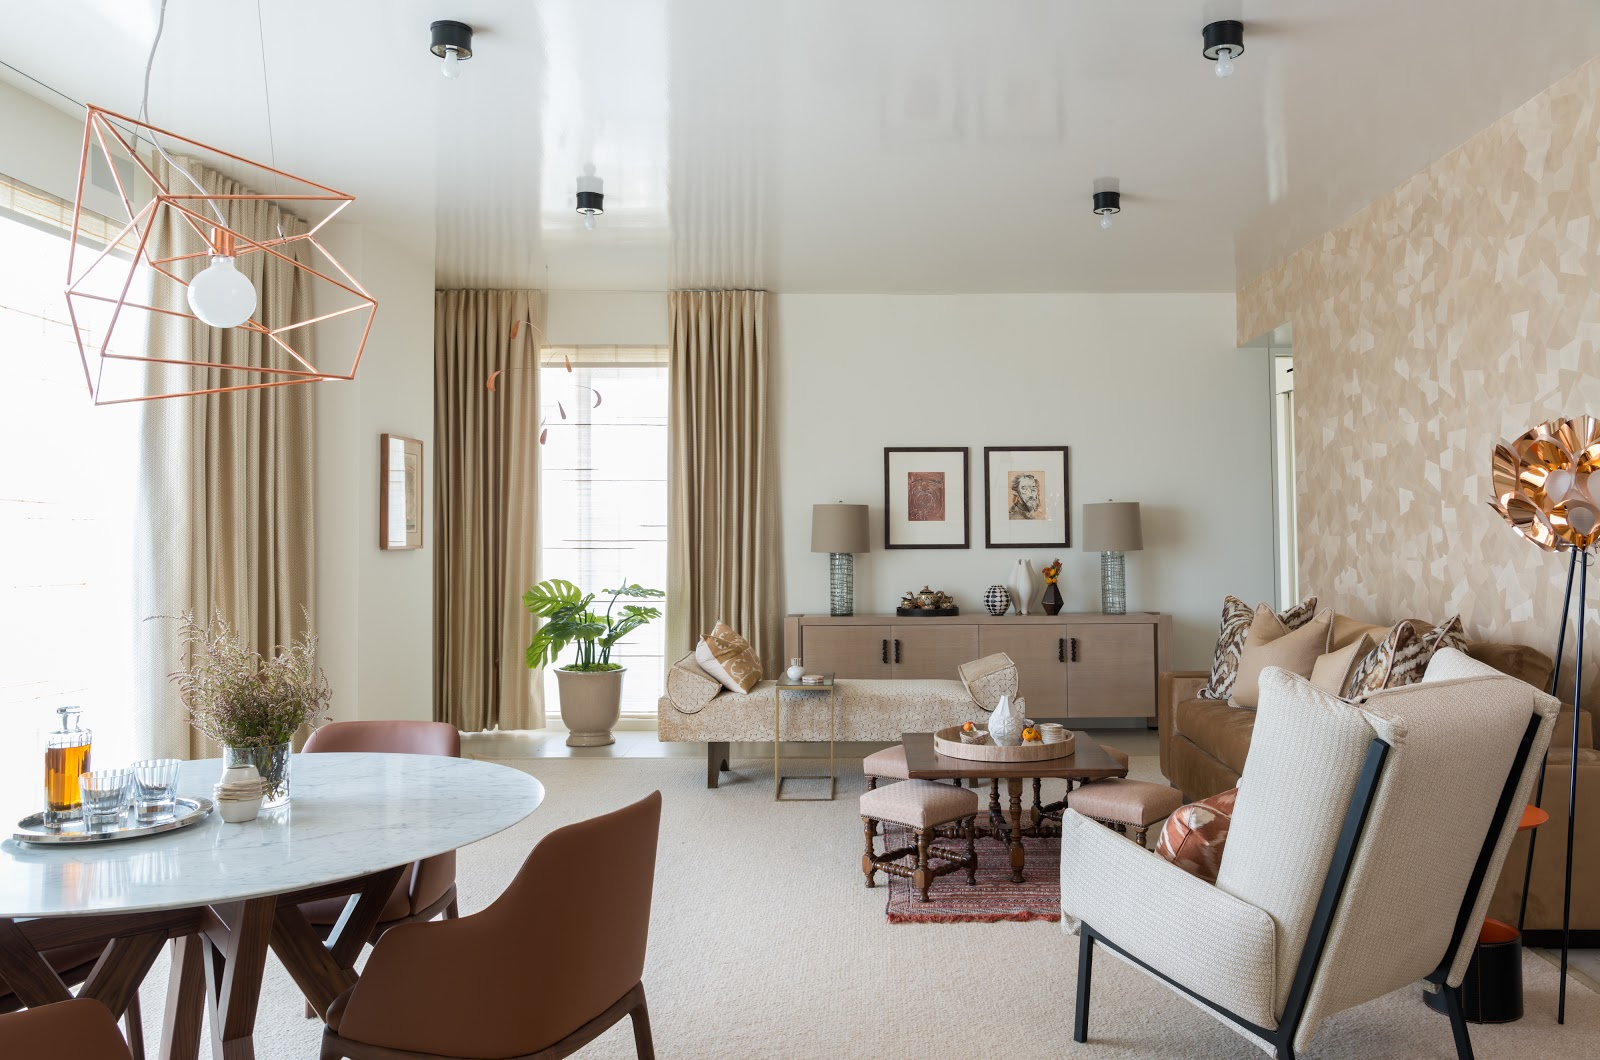 collected high-rise minimalist living room with copper geometric lighting and neutral colors - laura u interior design